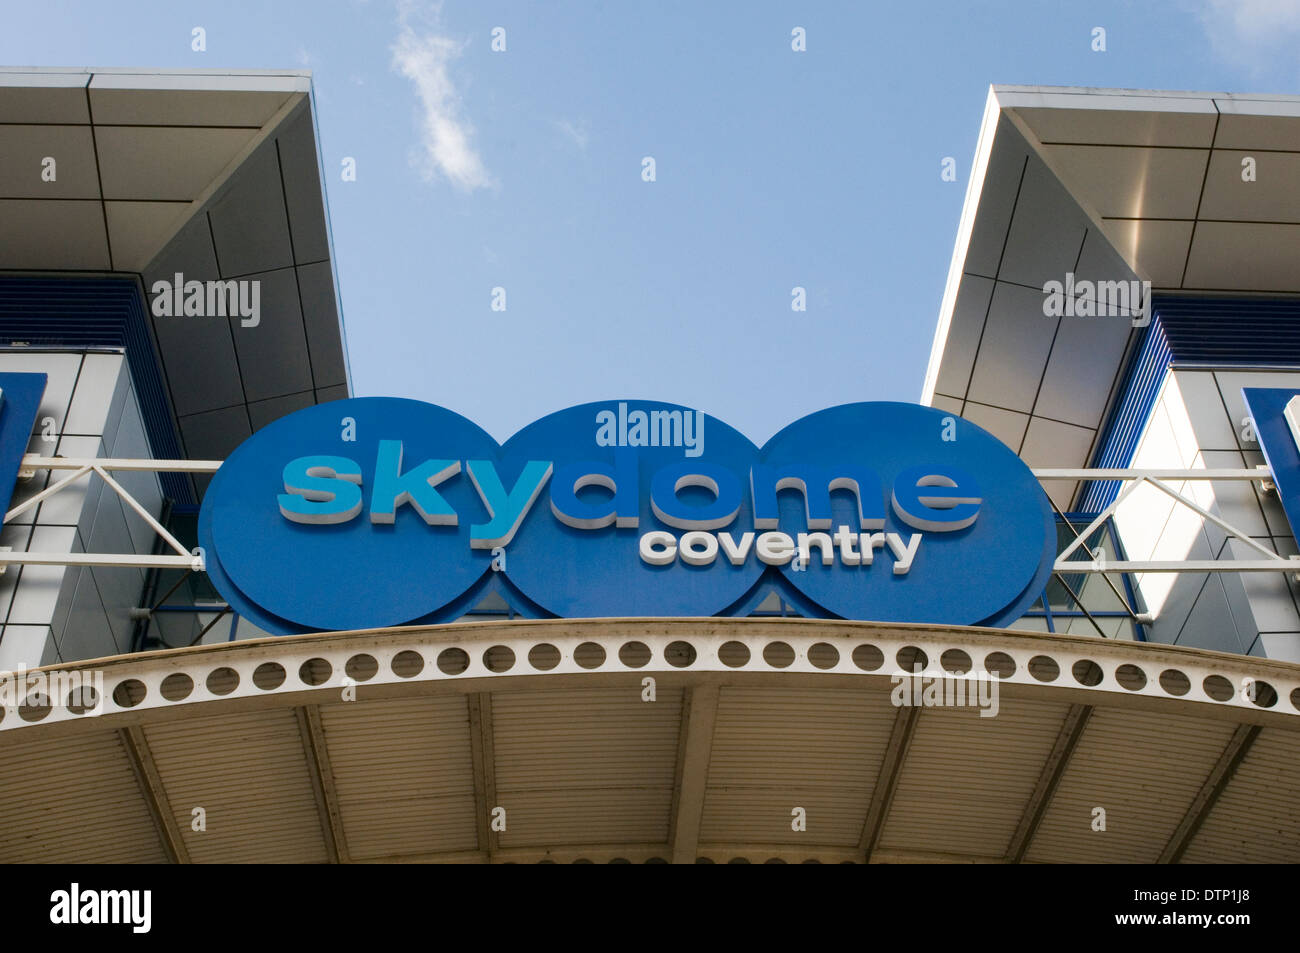 skydome coventry uk - Stock Image